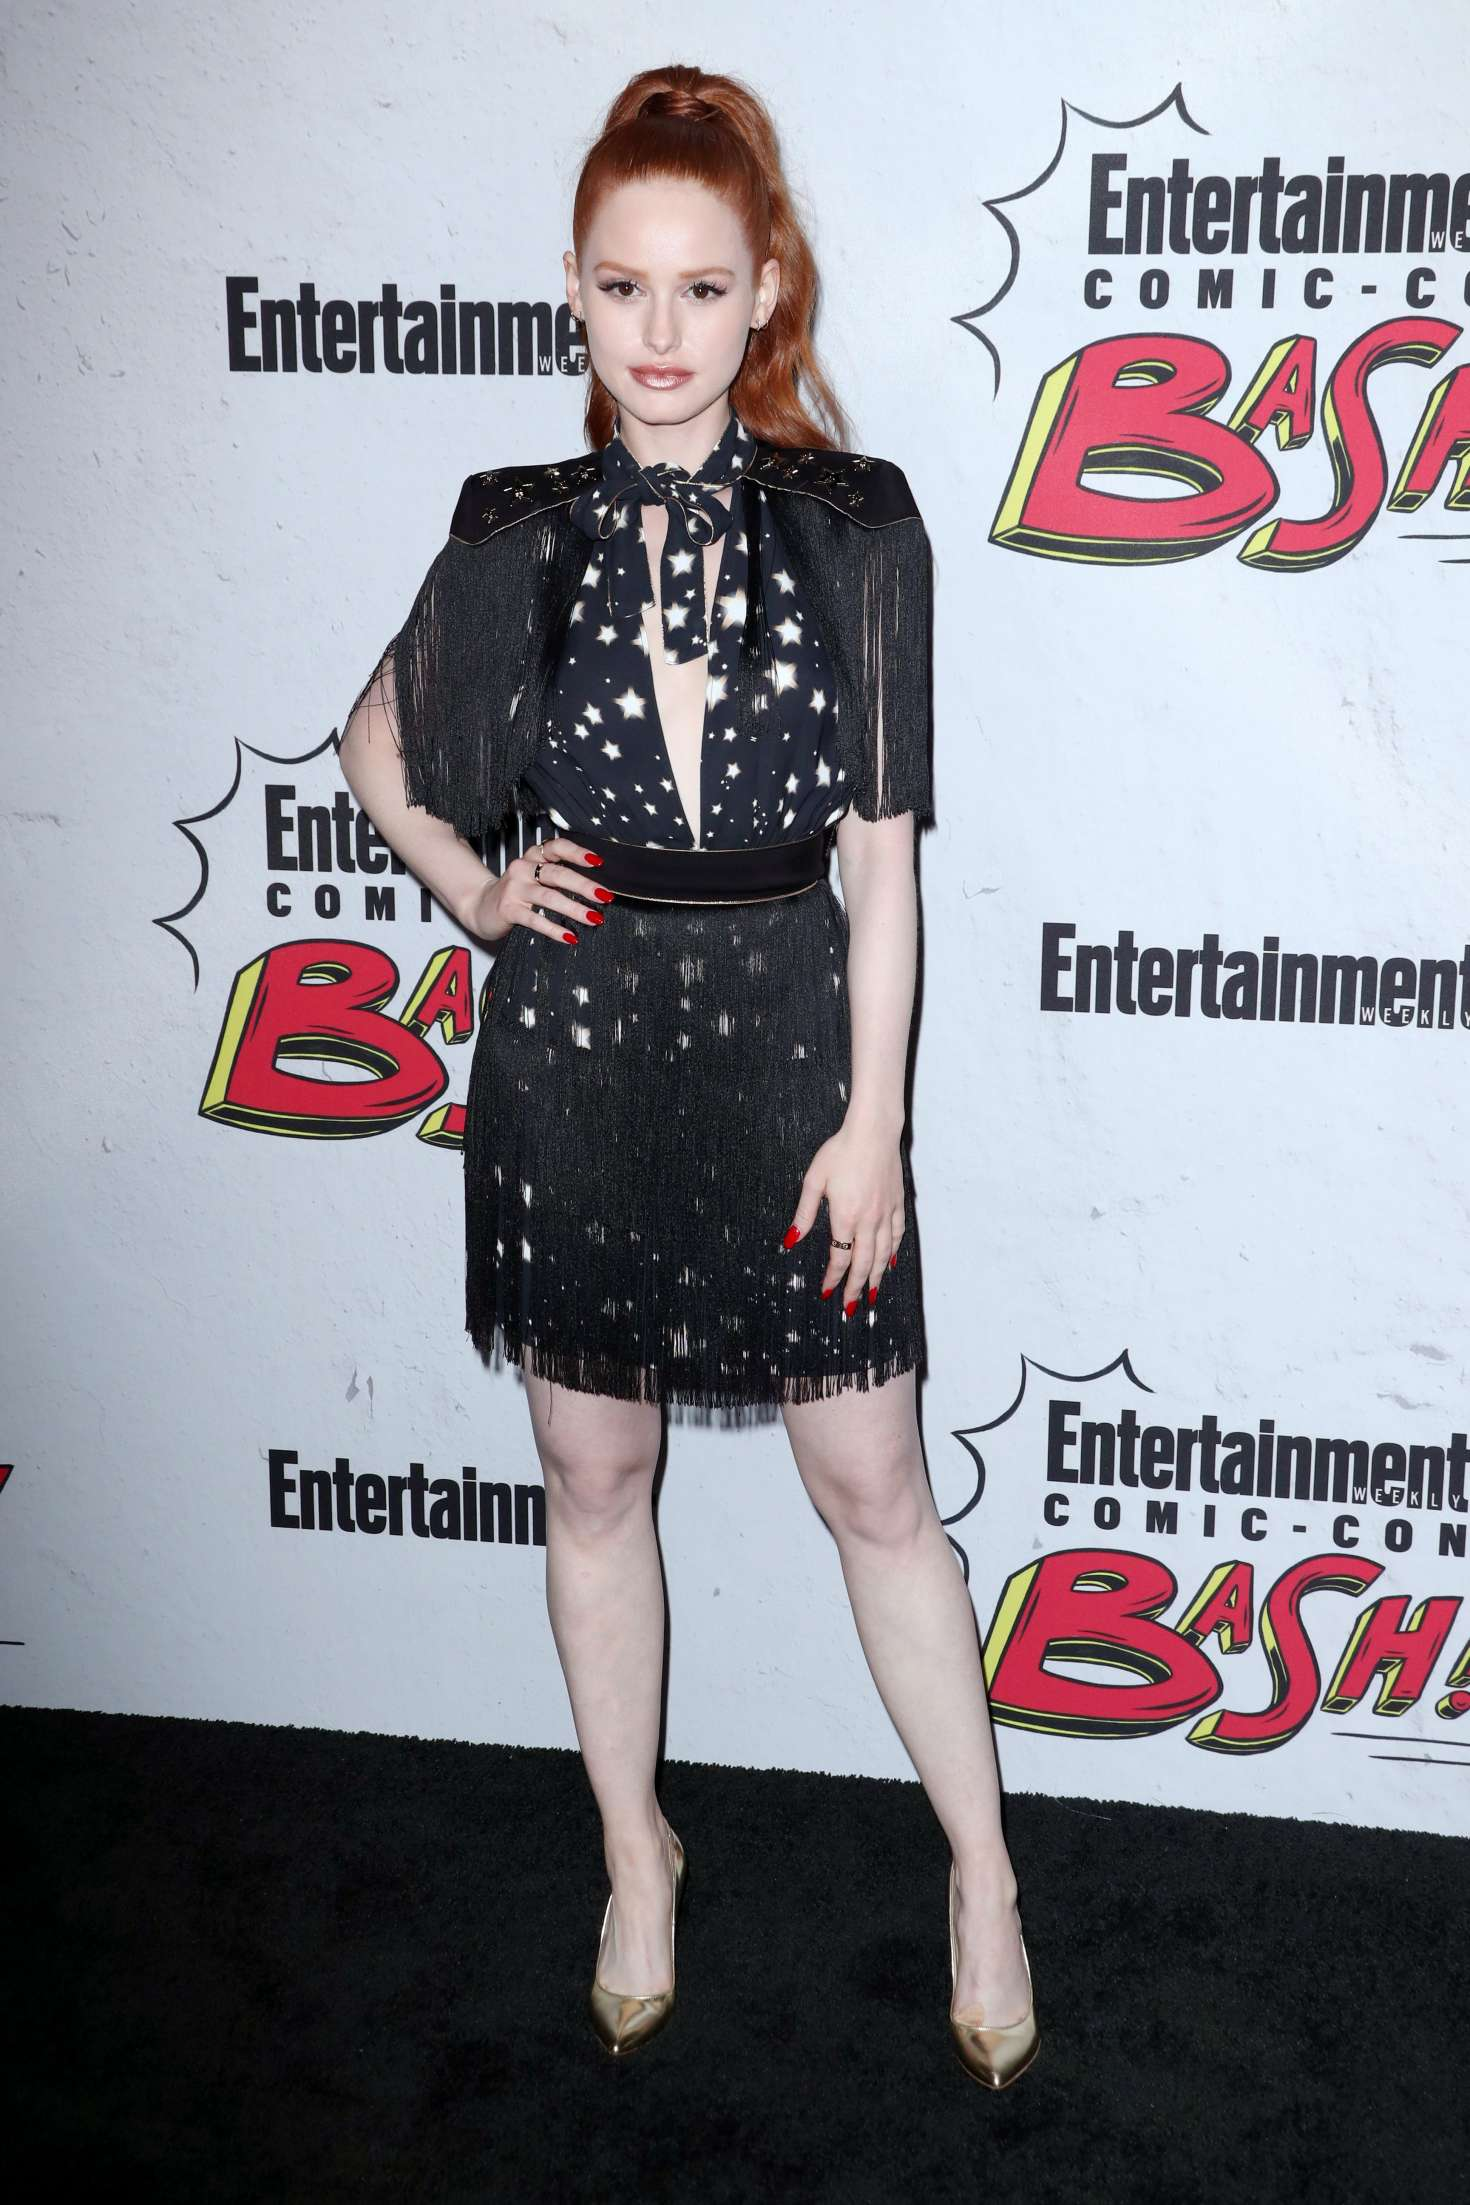 Madelaine Petsch 2017 : Madelaine Petsch: Entertainment Weekly Party at 2017 Comic-Con -04